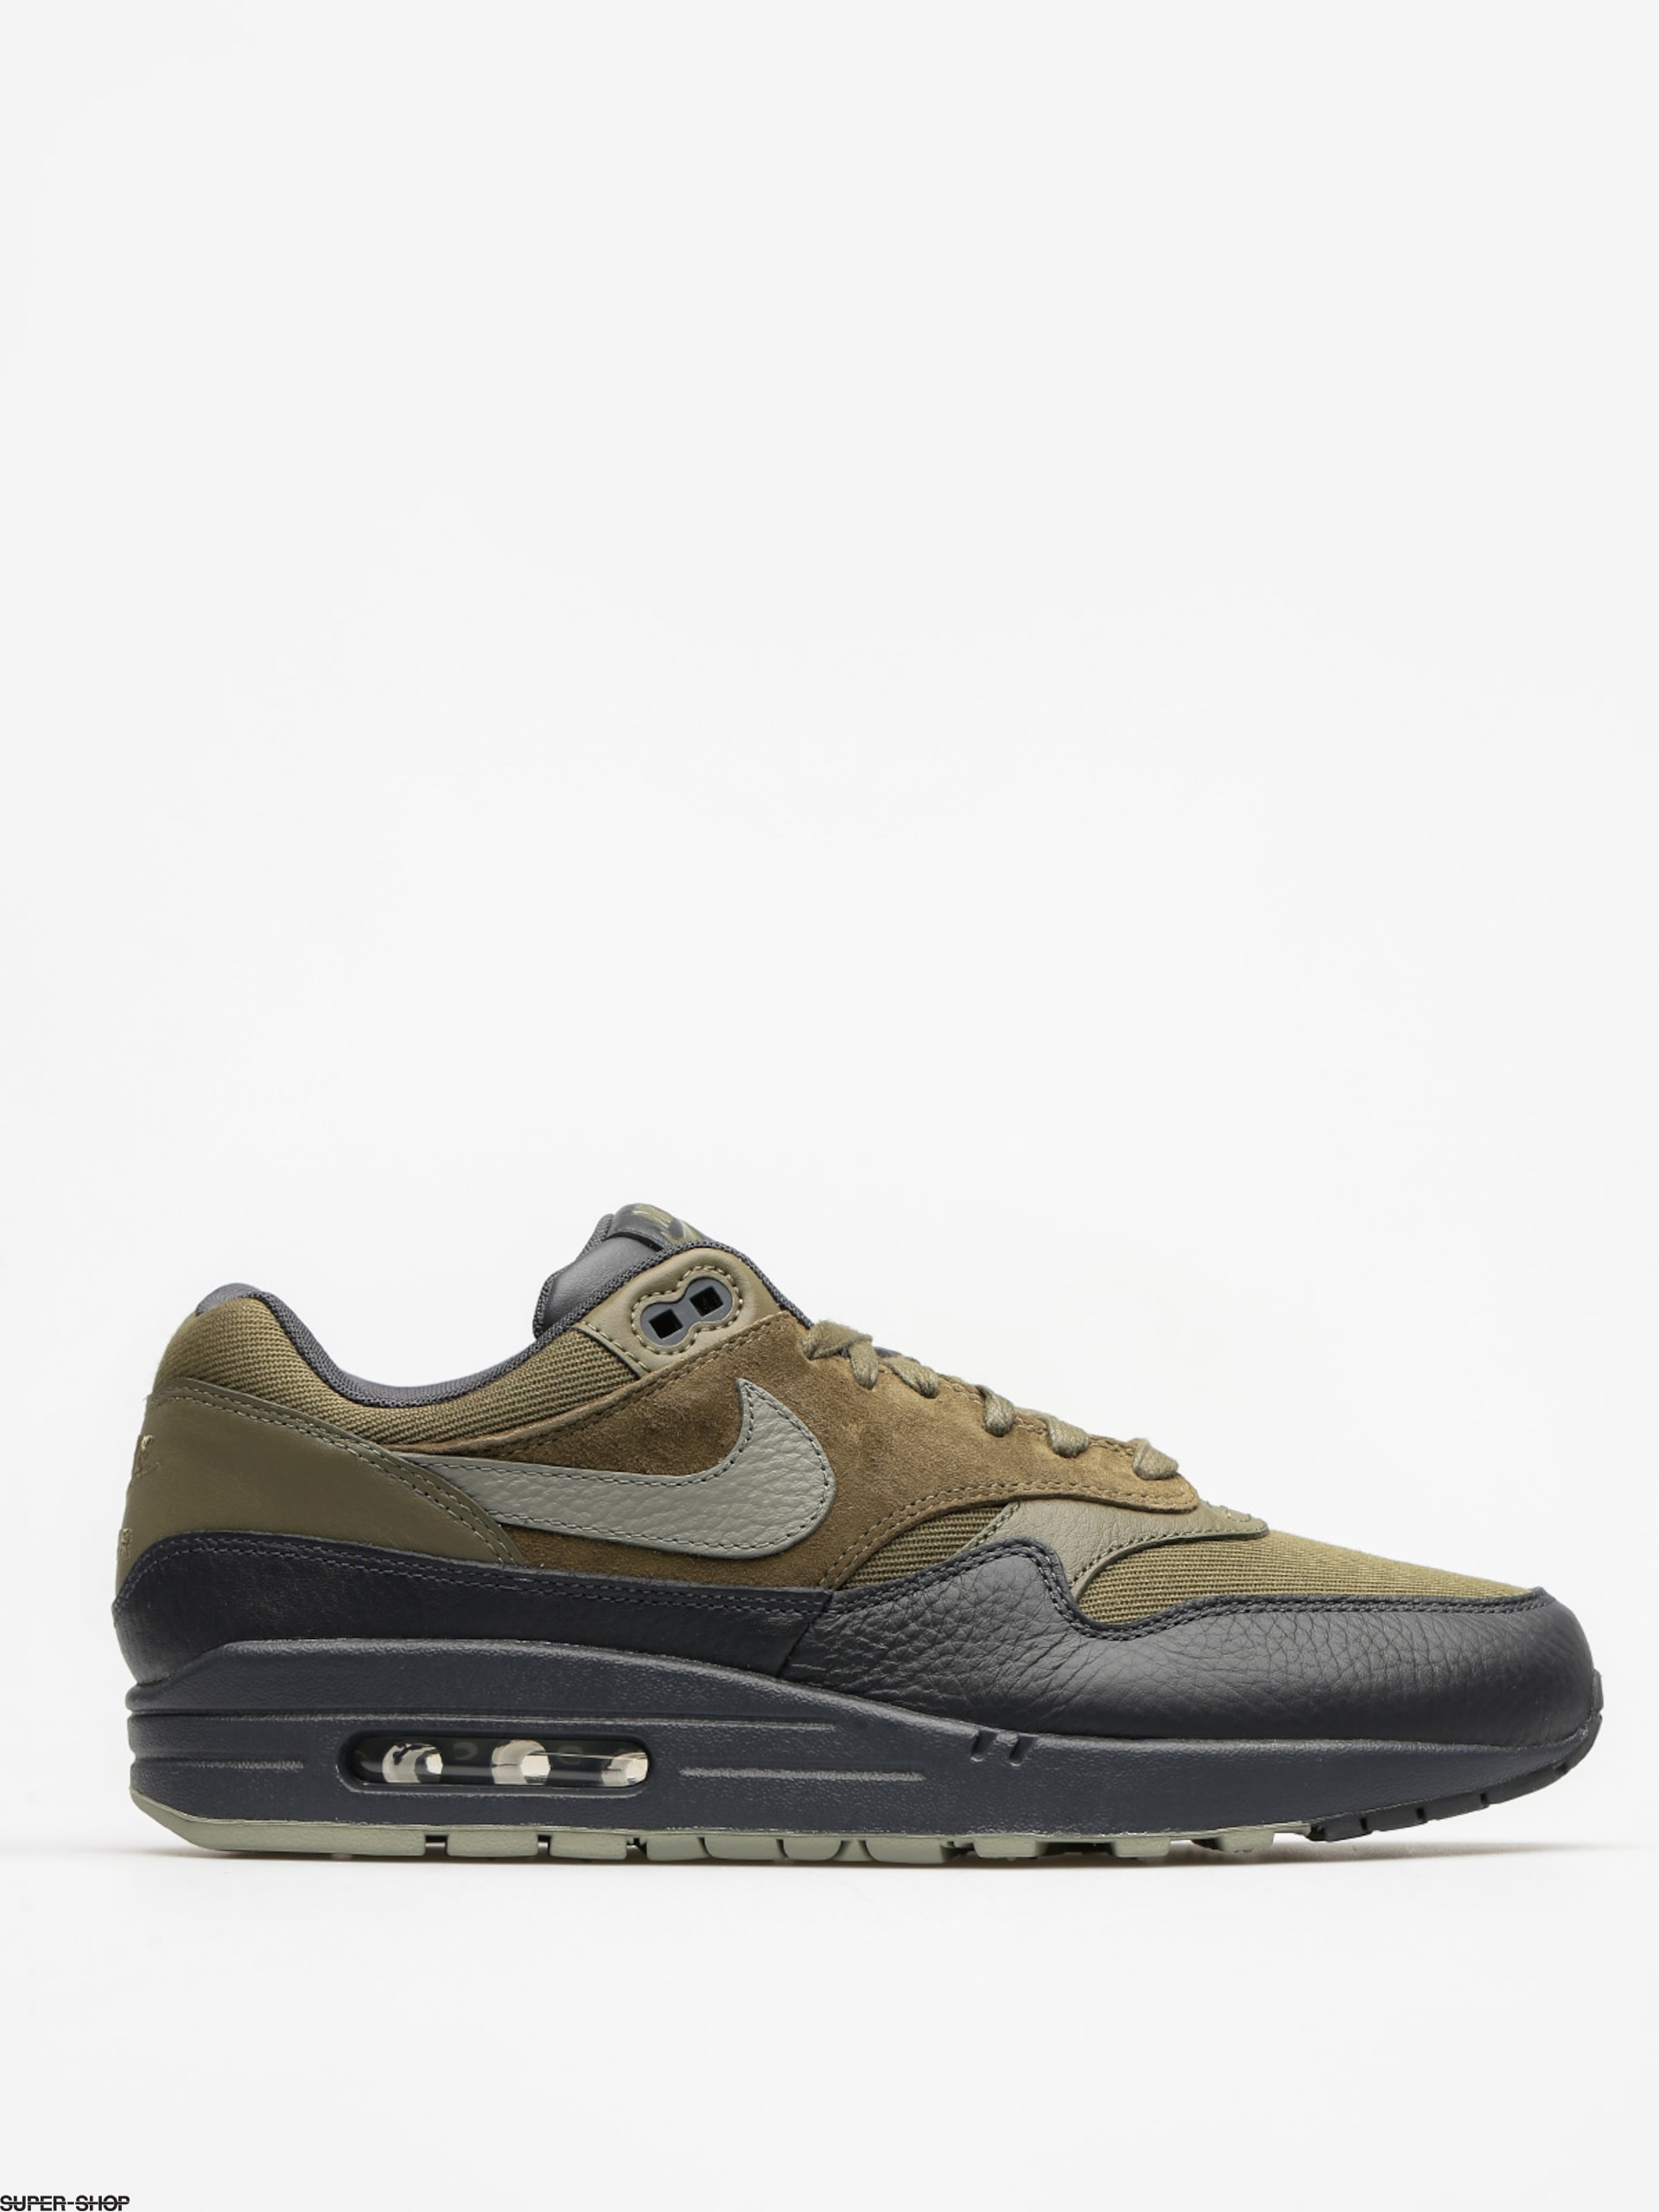 Nike Shoes Air Max 1 (Premium medium olive/dark stucco anthracite)